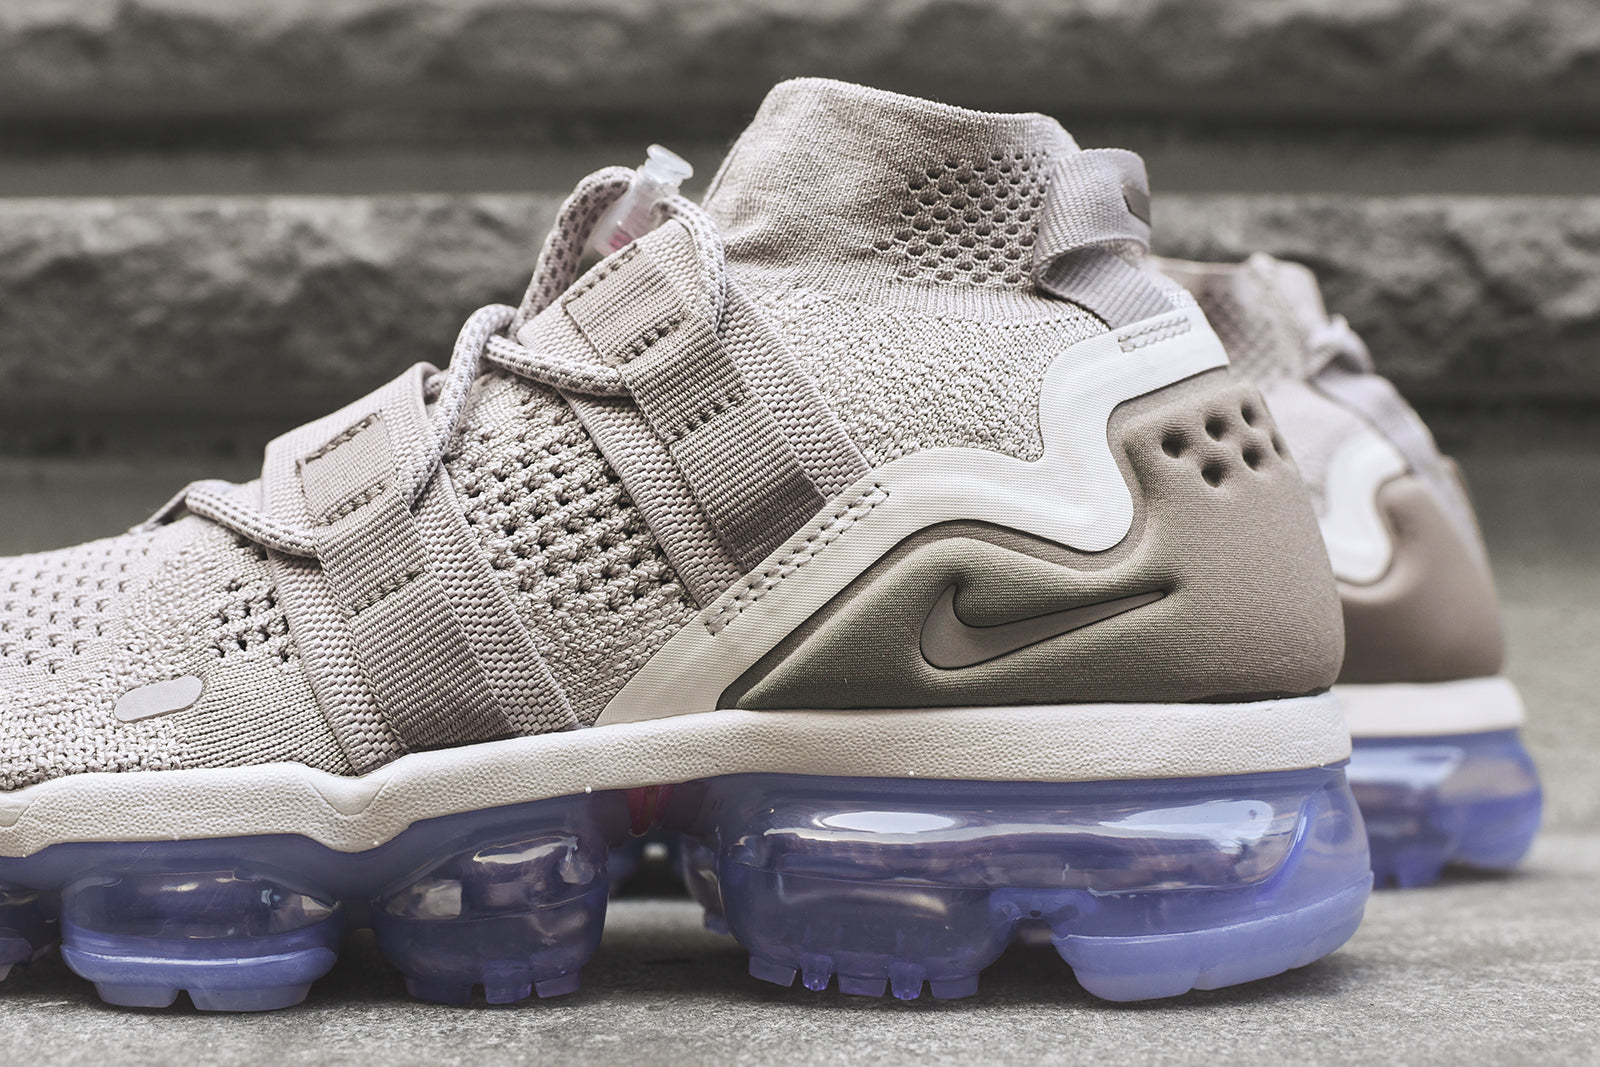 63c09e5414 Nike Air VaporMax FK Utility - Moon Particle. May 02, 2018. -4